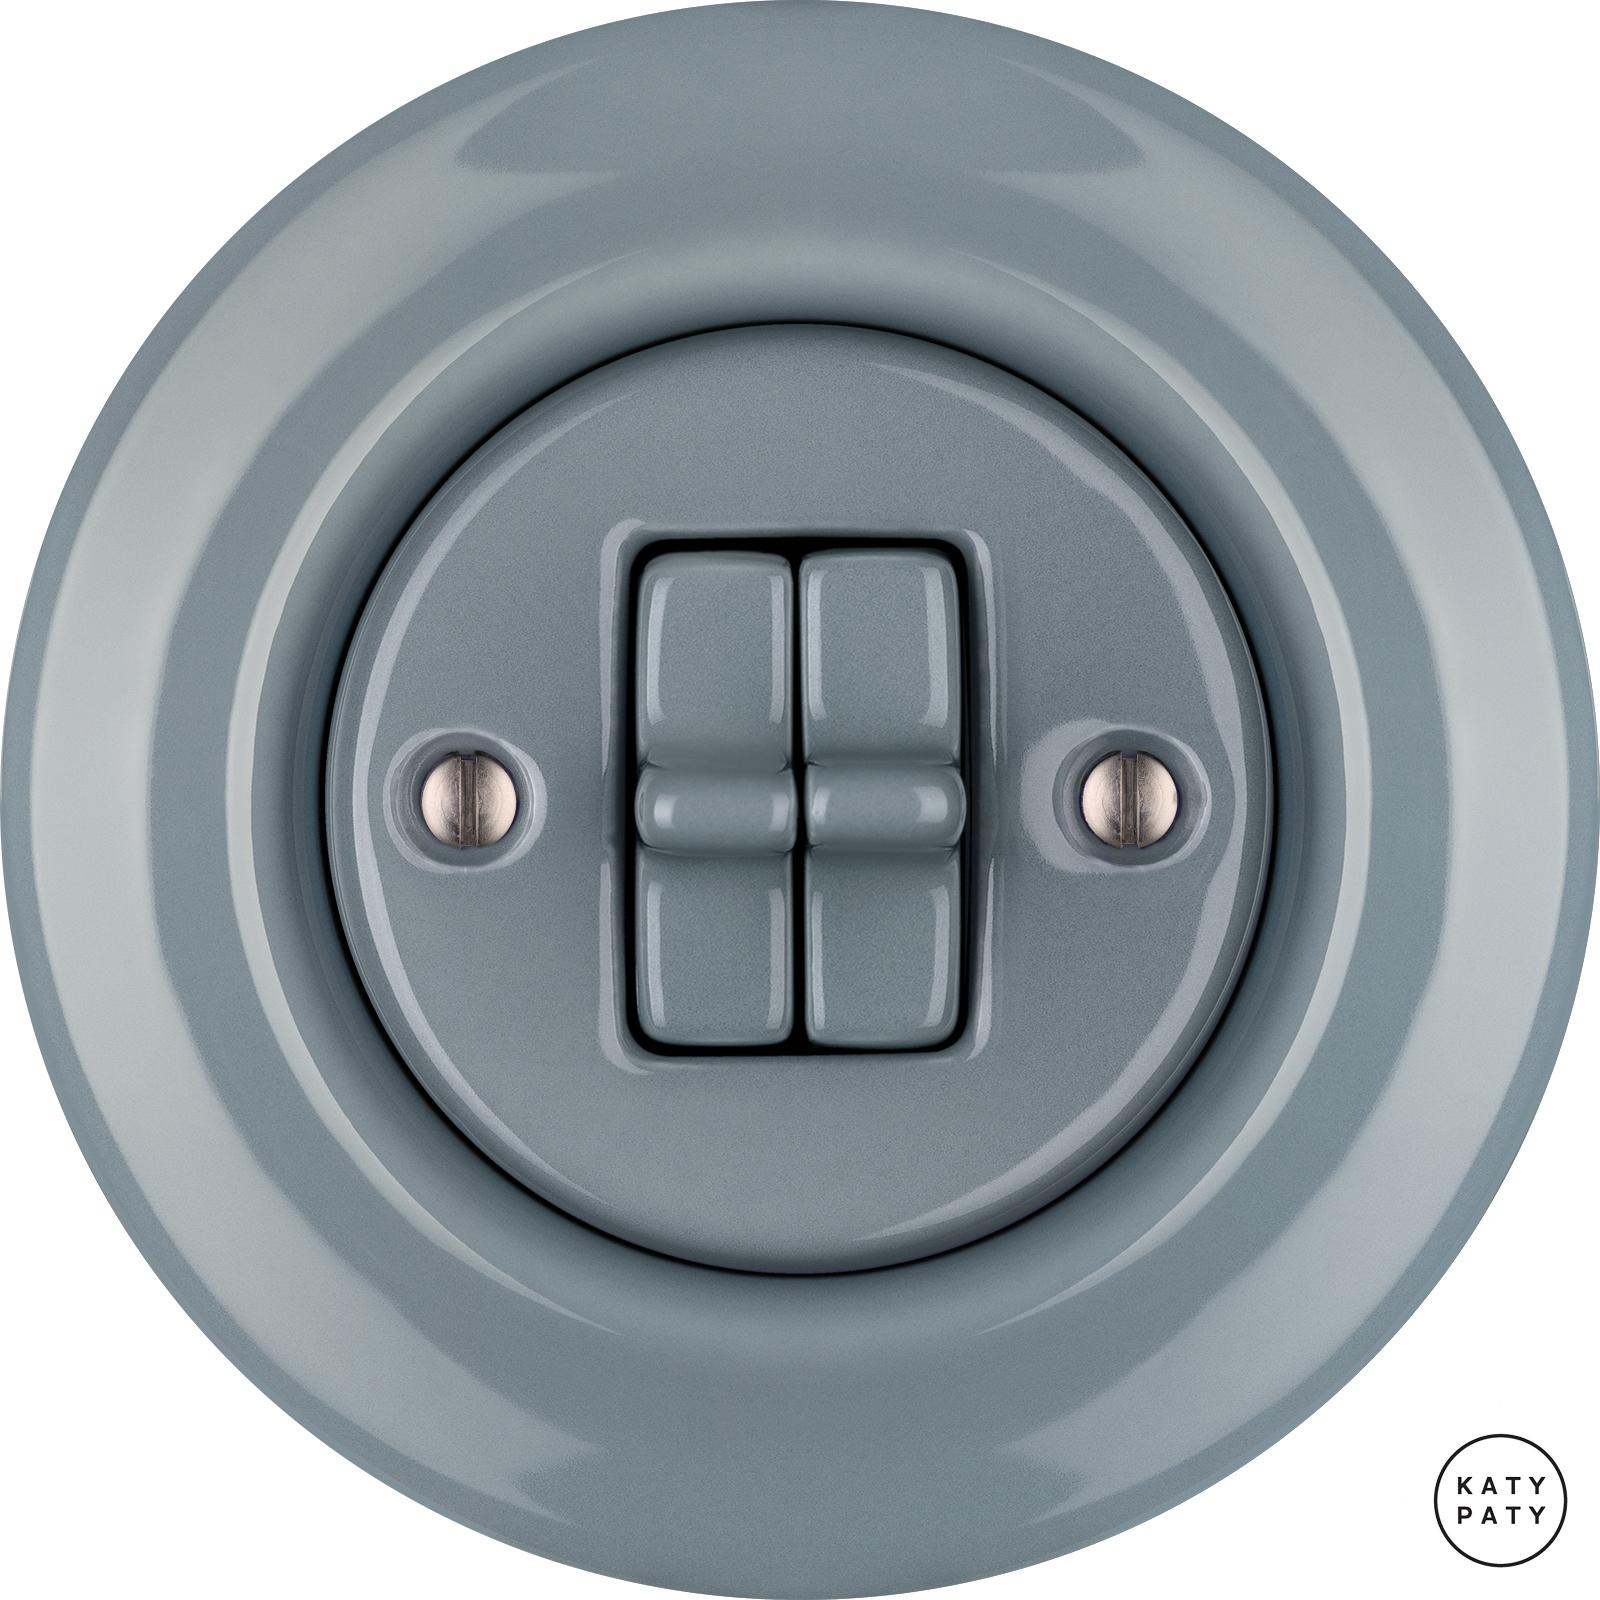 Porcelain toggle switches - a double gang ()  - LIVOR | Katy Paty